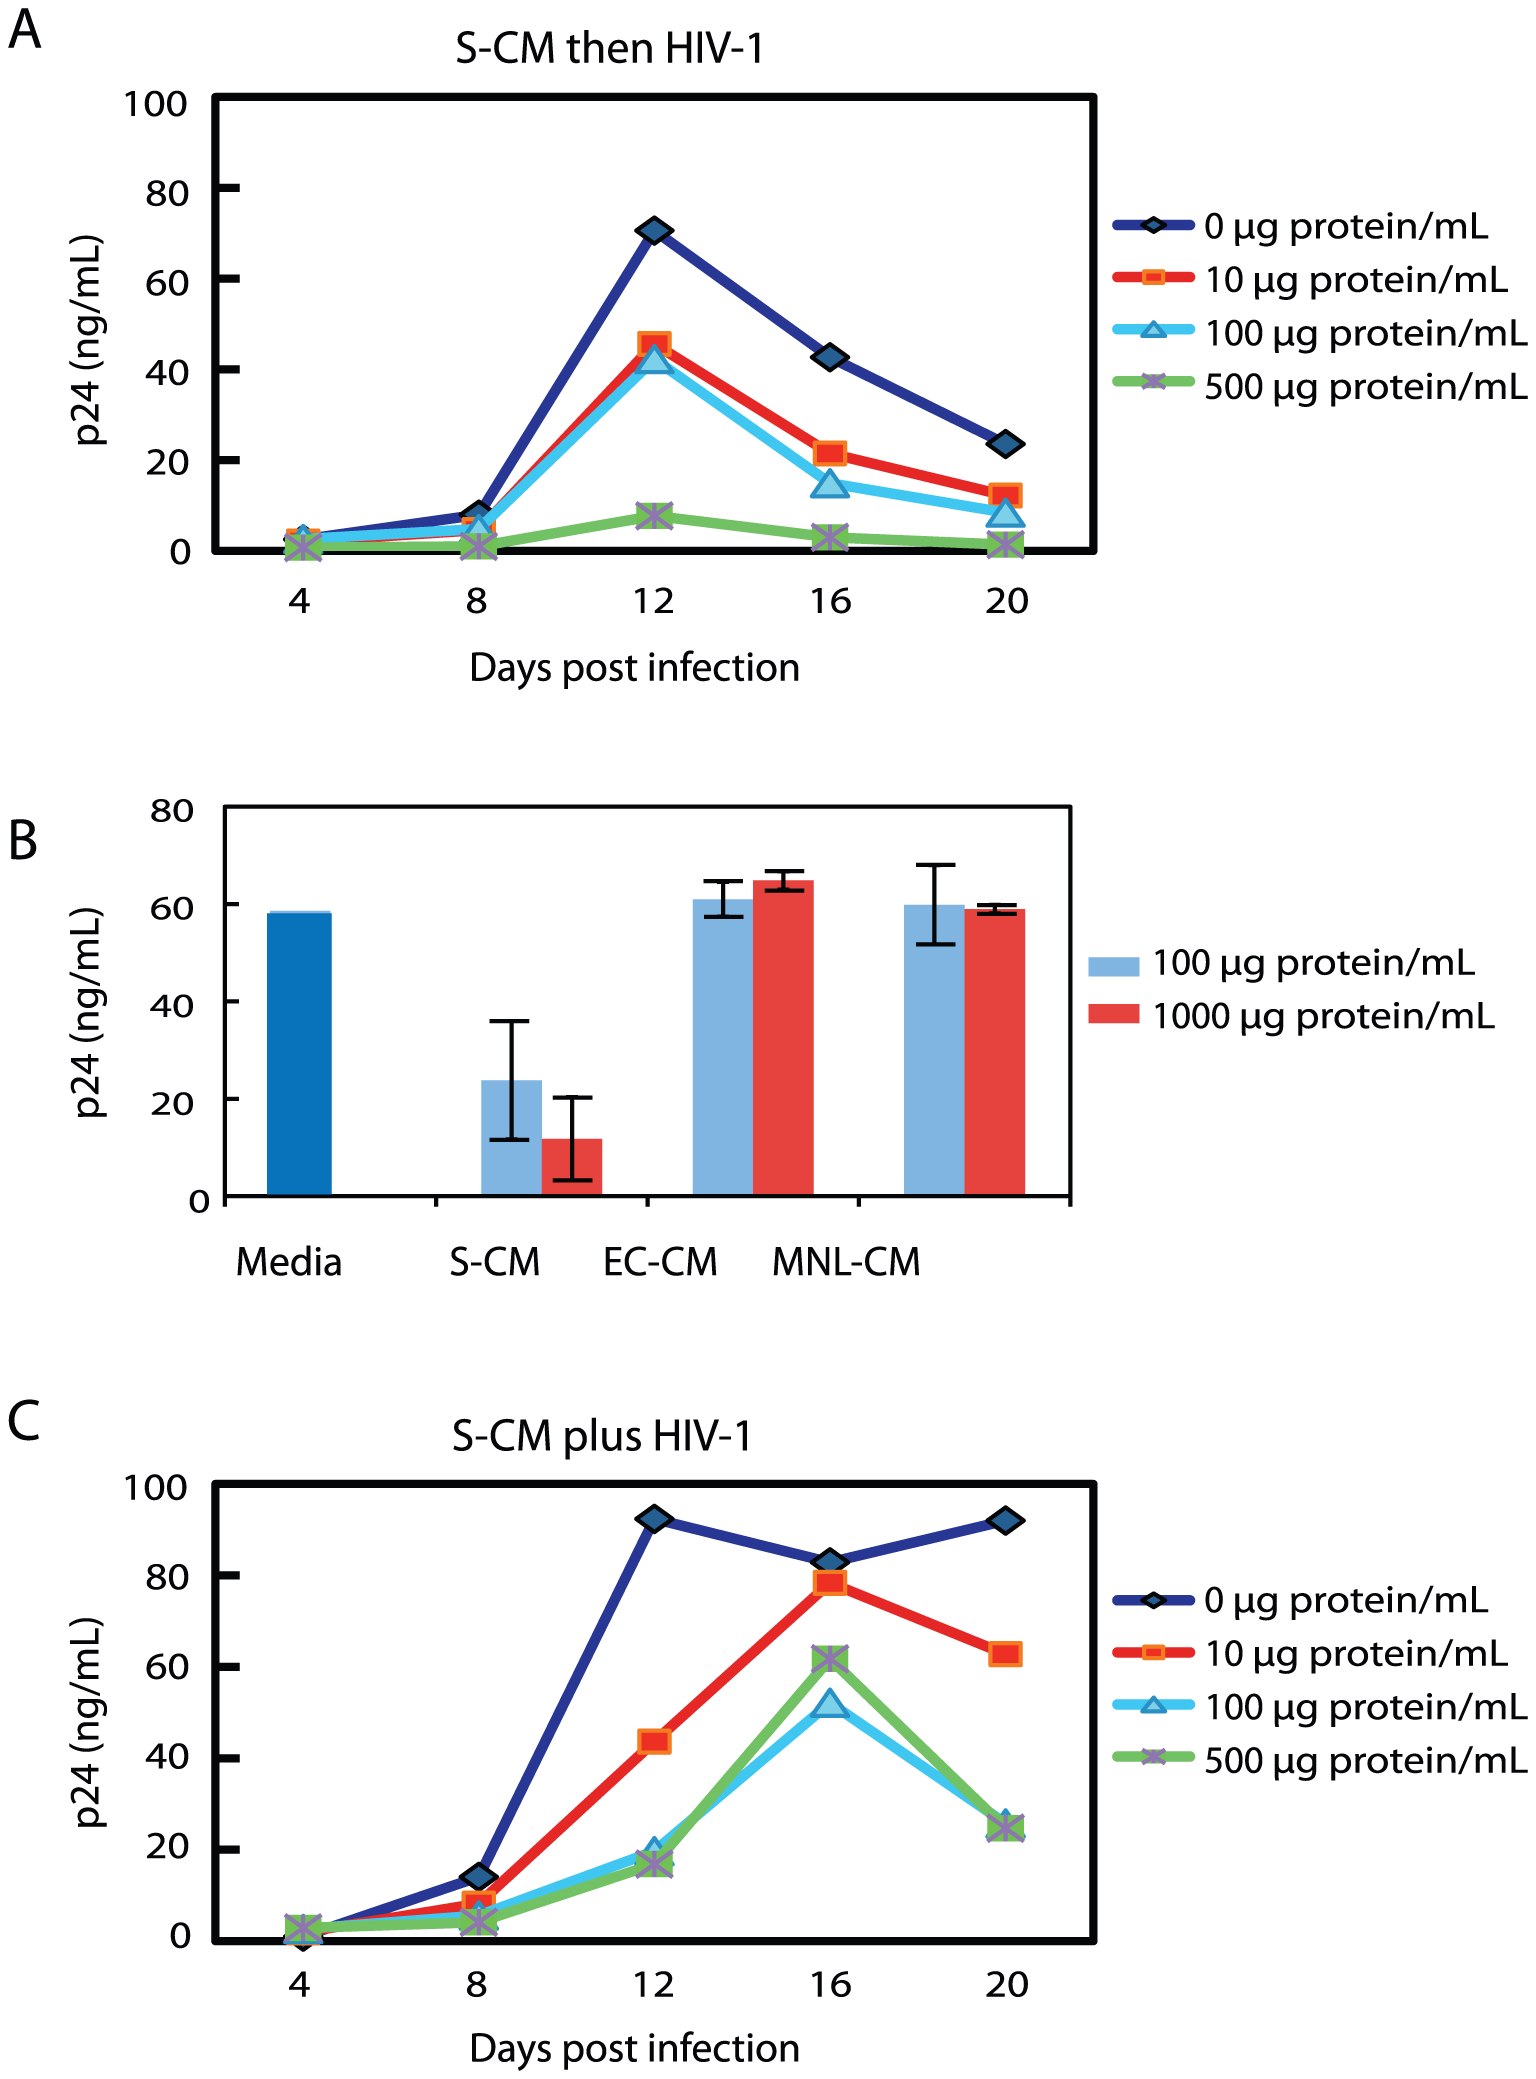 Intestinal S-CM down-regulates HIV-1 replication in monocyte-derived macrophages.